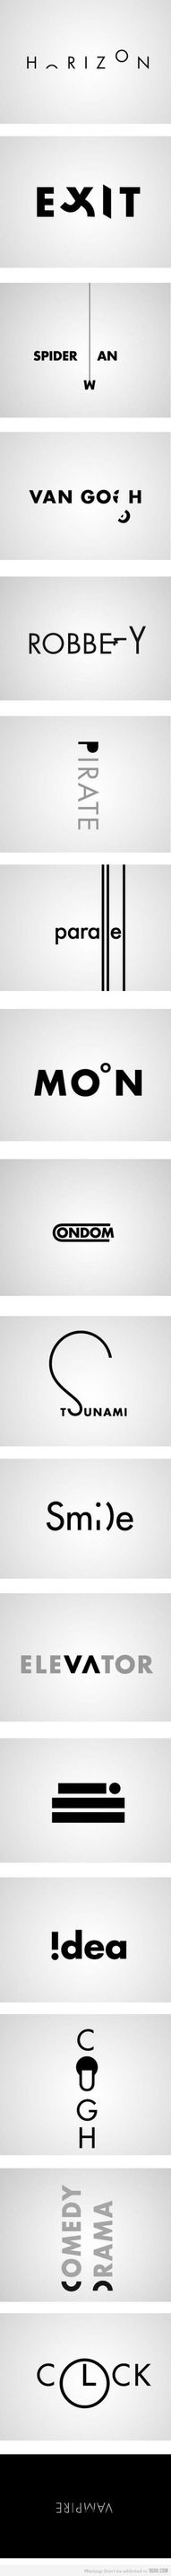 Really funny, this is a typographic way of creativity